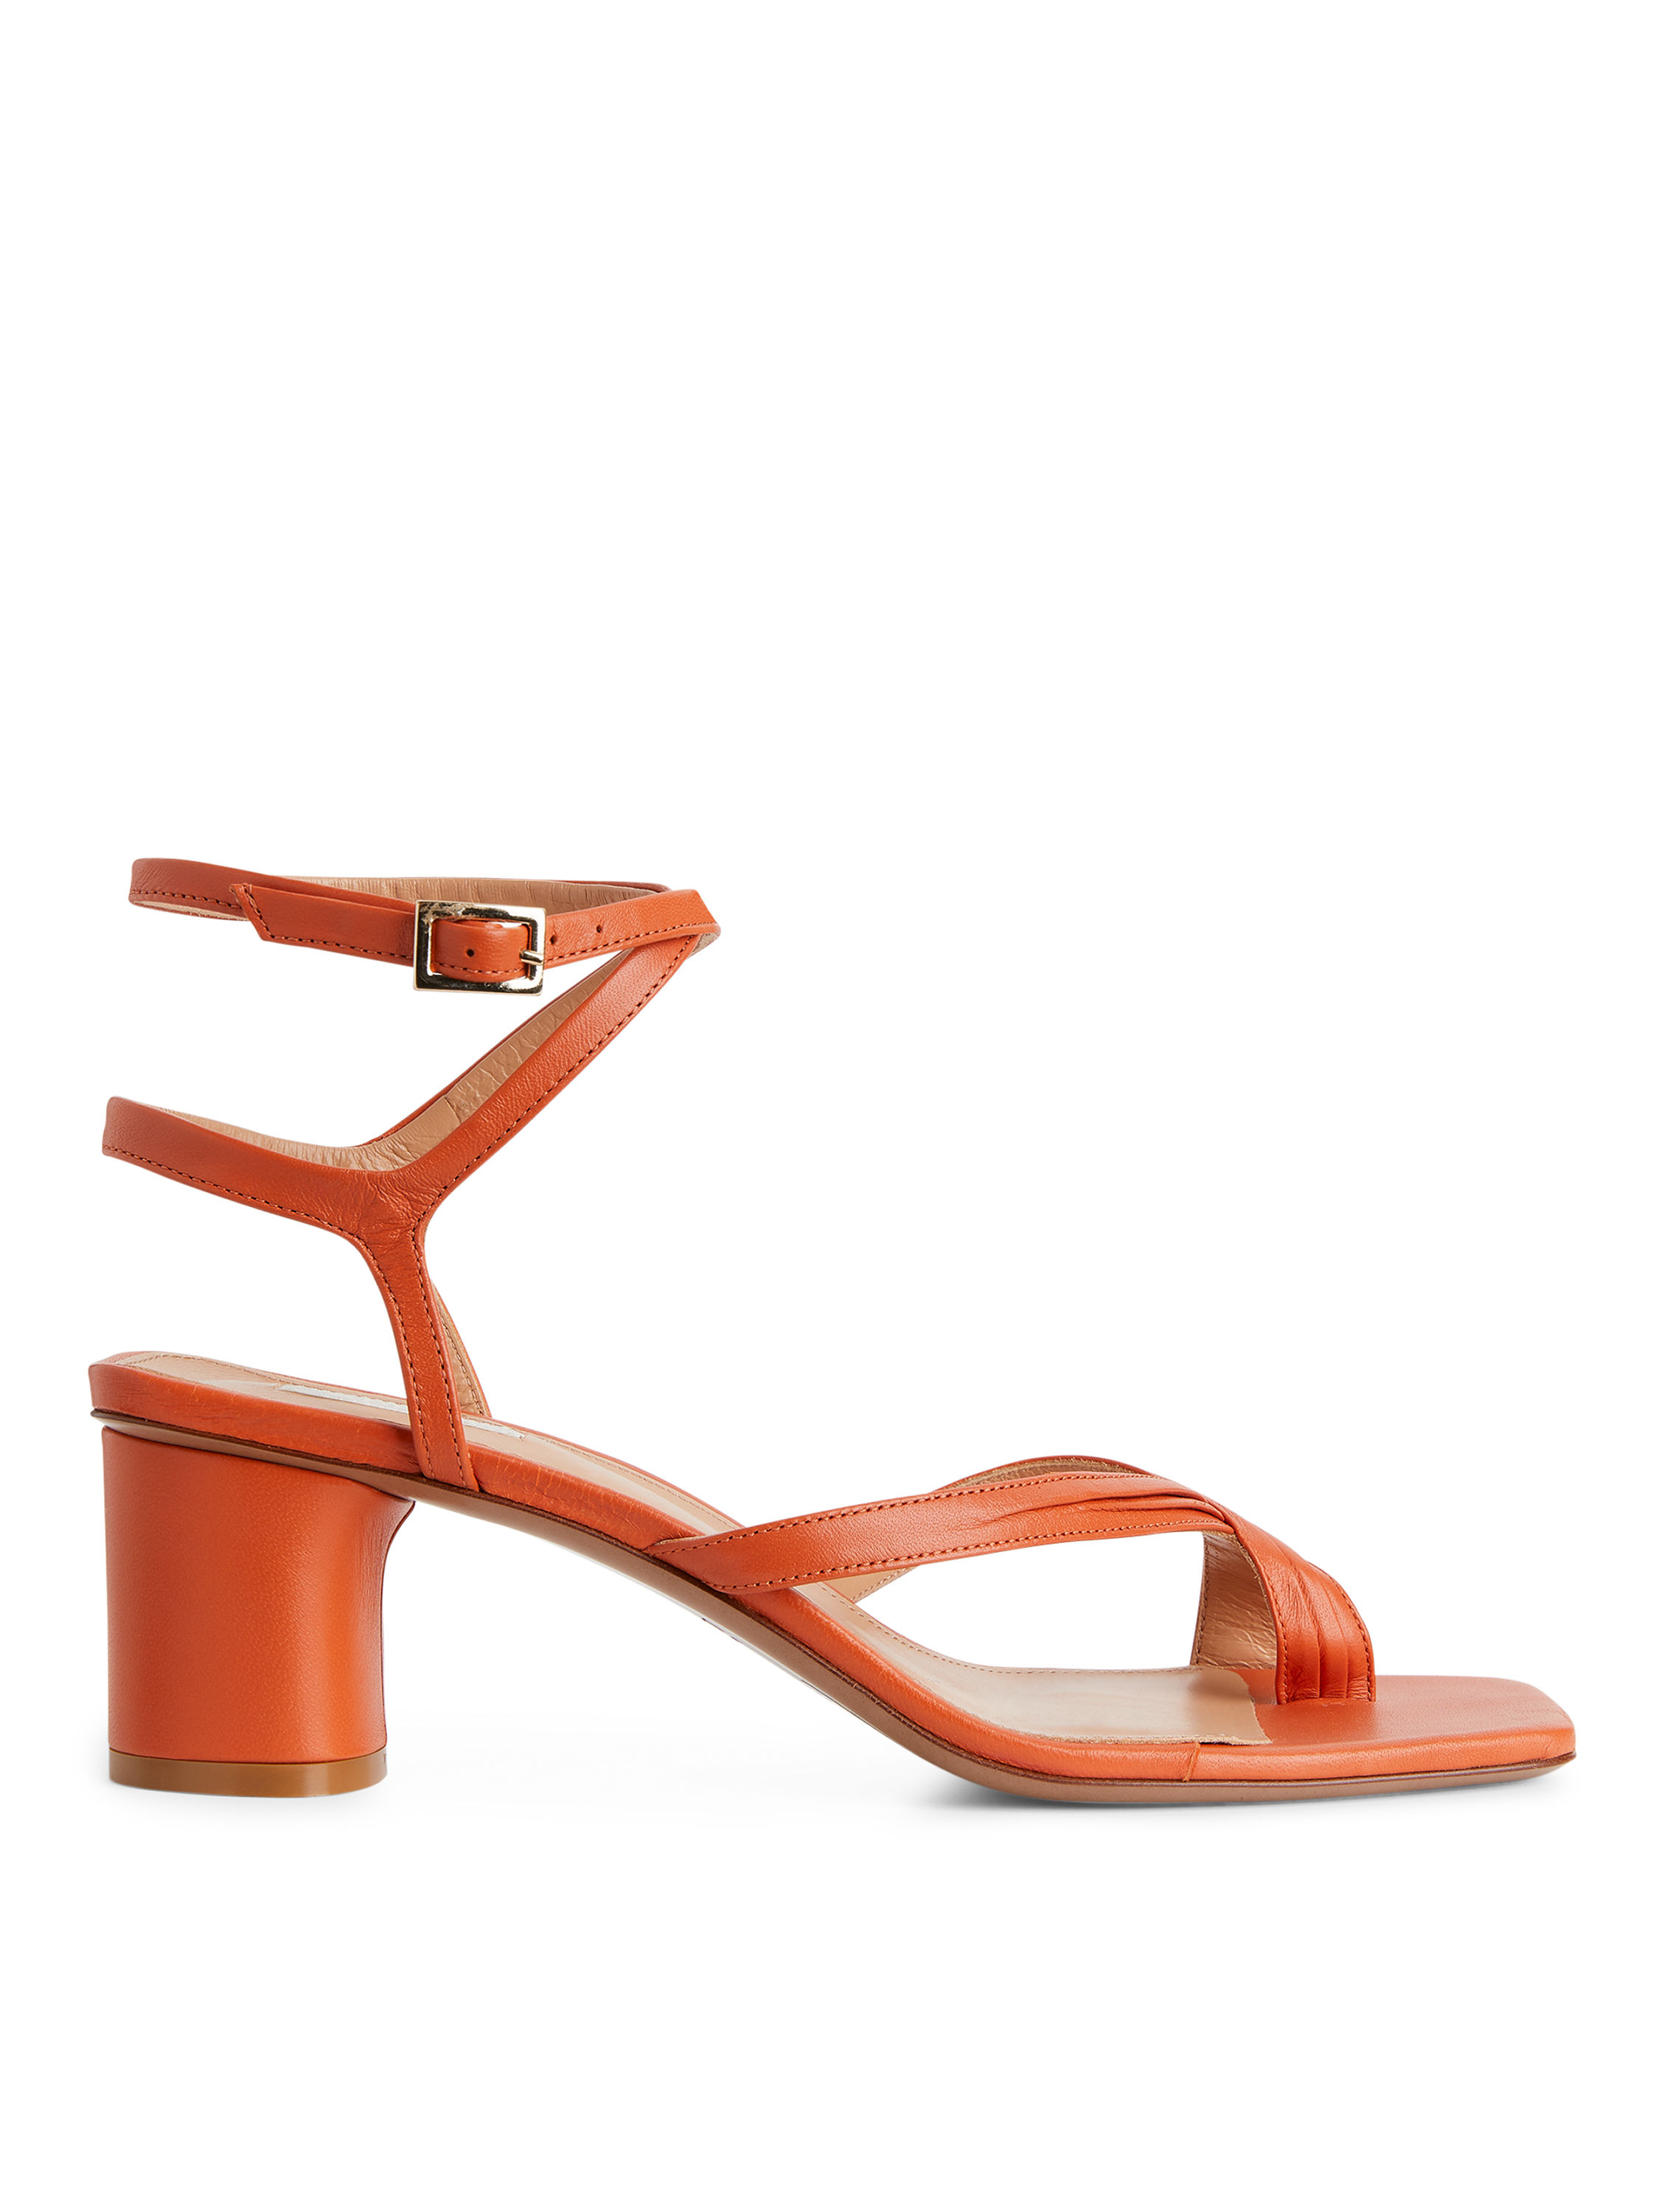 Fabric Swatch image of Arket ankle-wrap leather sandal in orange